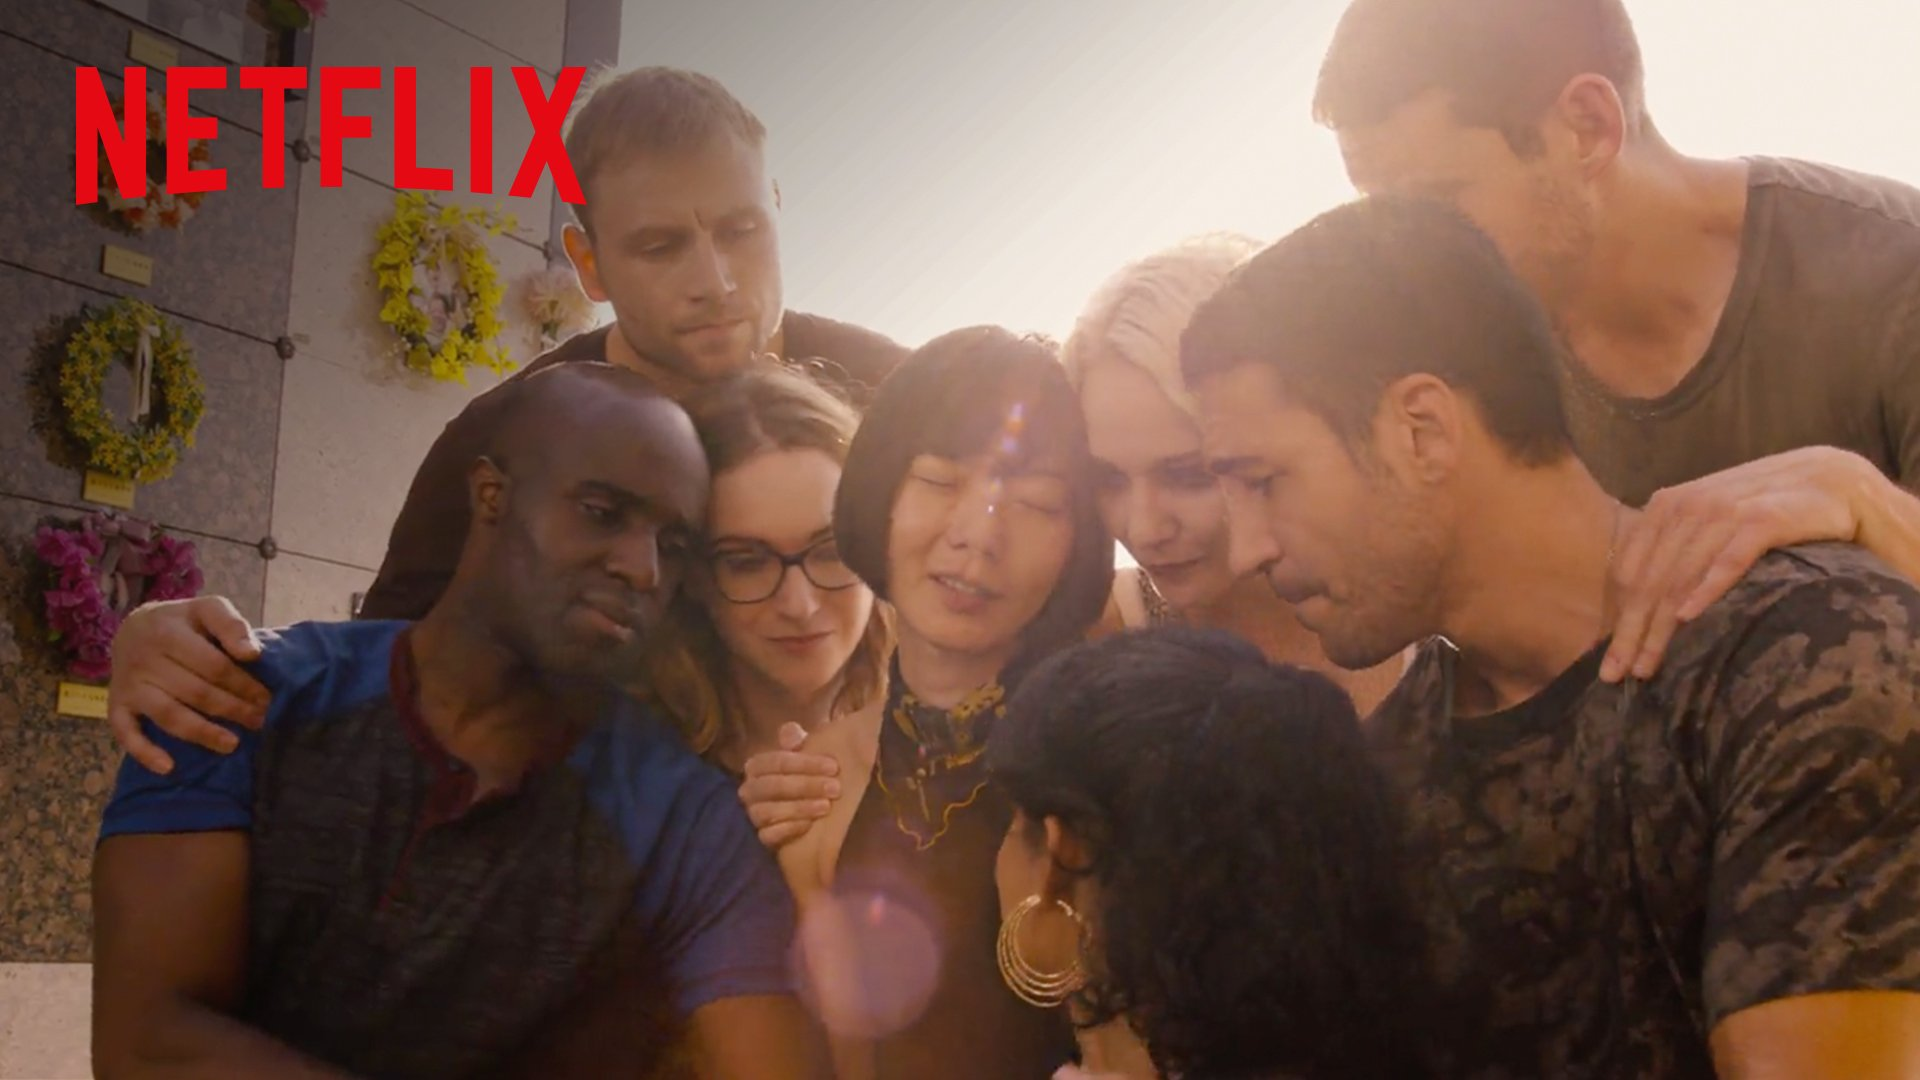 Like a group text, except it's a spiritual connection that defies all scientific explanation. @sense8 is back May 5. https://t.co/3DVVeBAboU